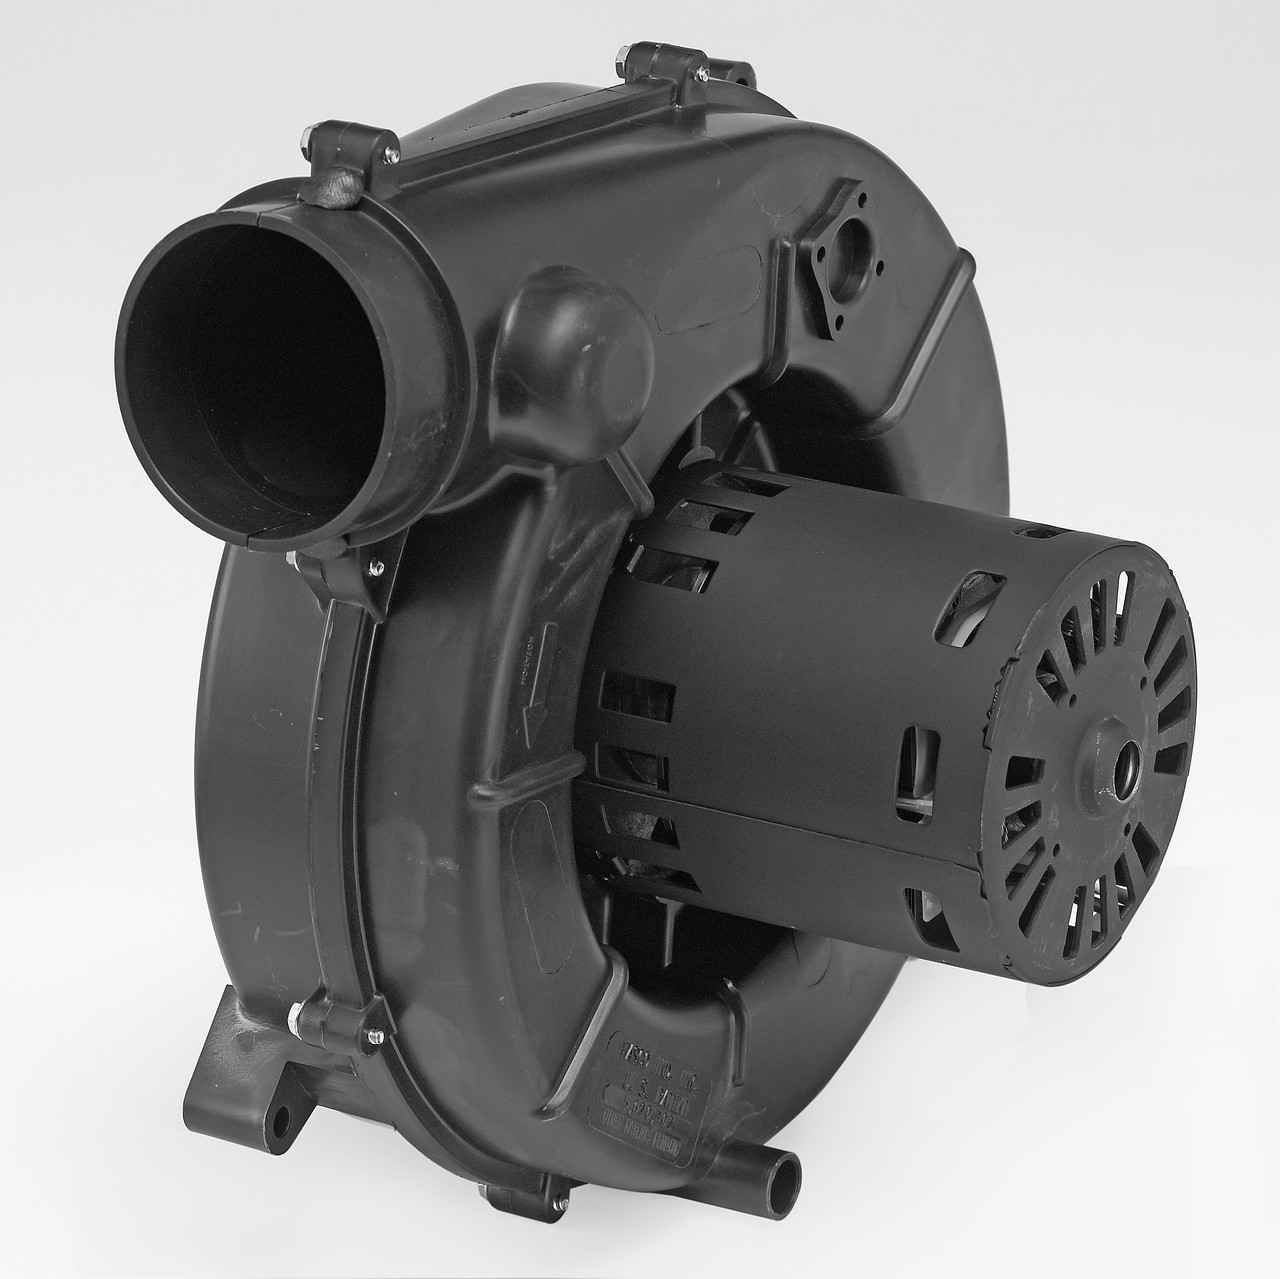 Trane Furnace Blower Motors - Furnace Draft Inducers - Venter Motors